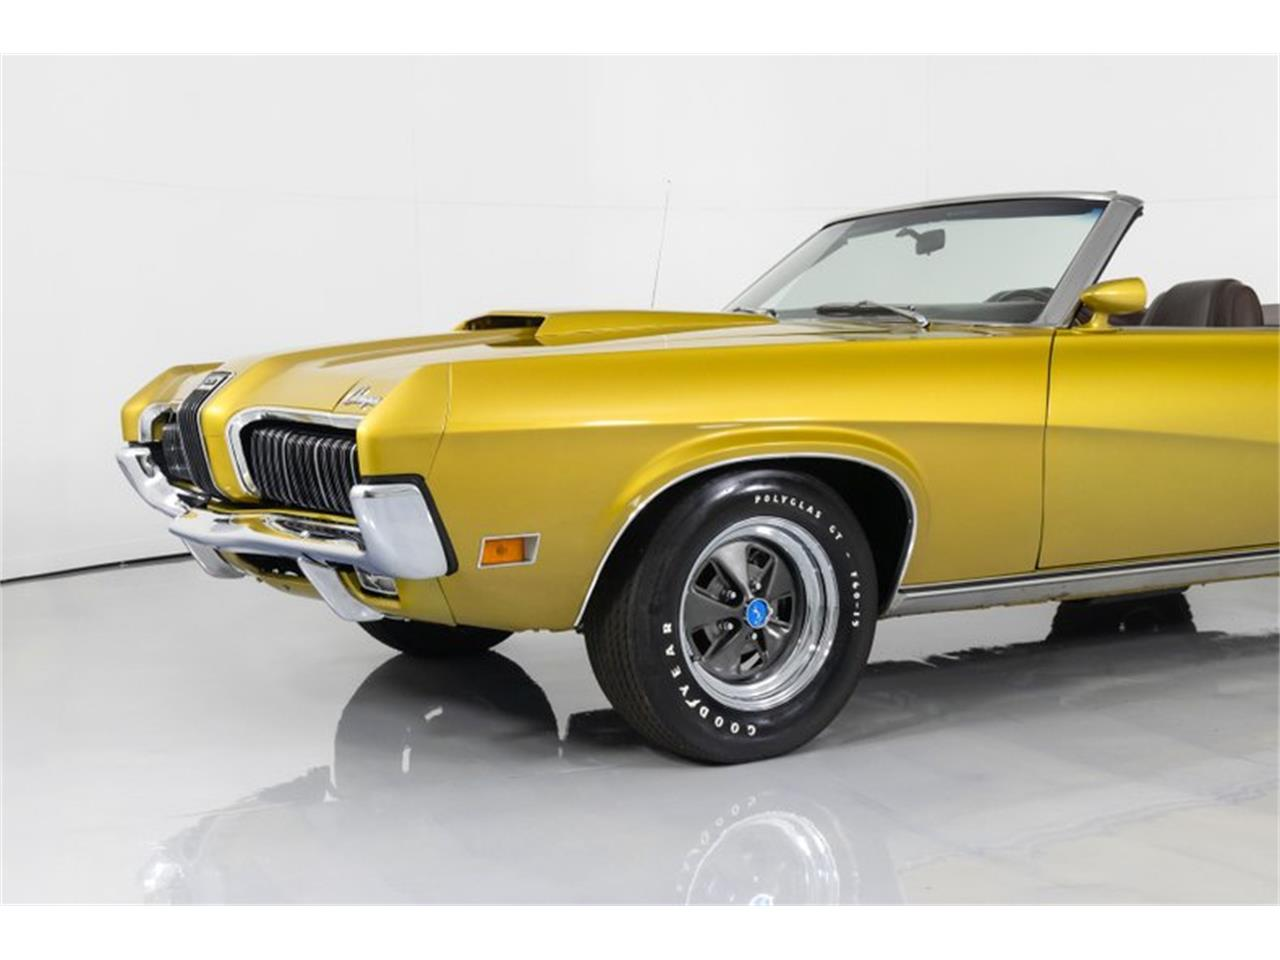 1970 Mercury Cougar (CC-1328032) for sale in St. Charles, Missouri